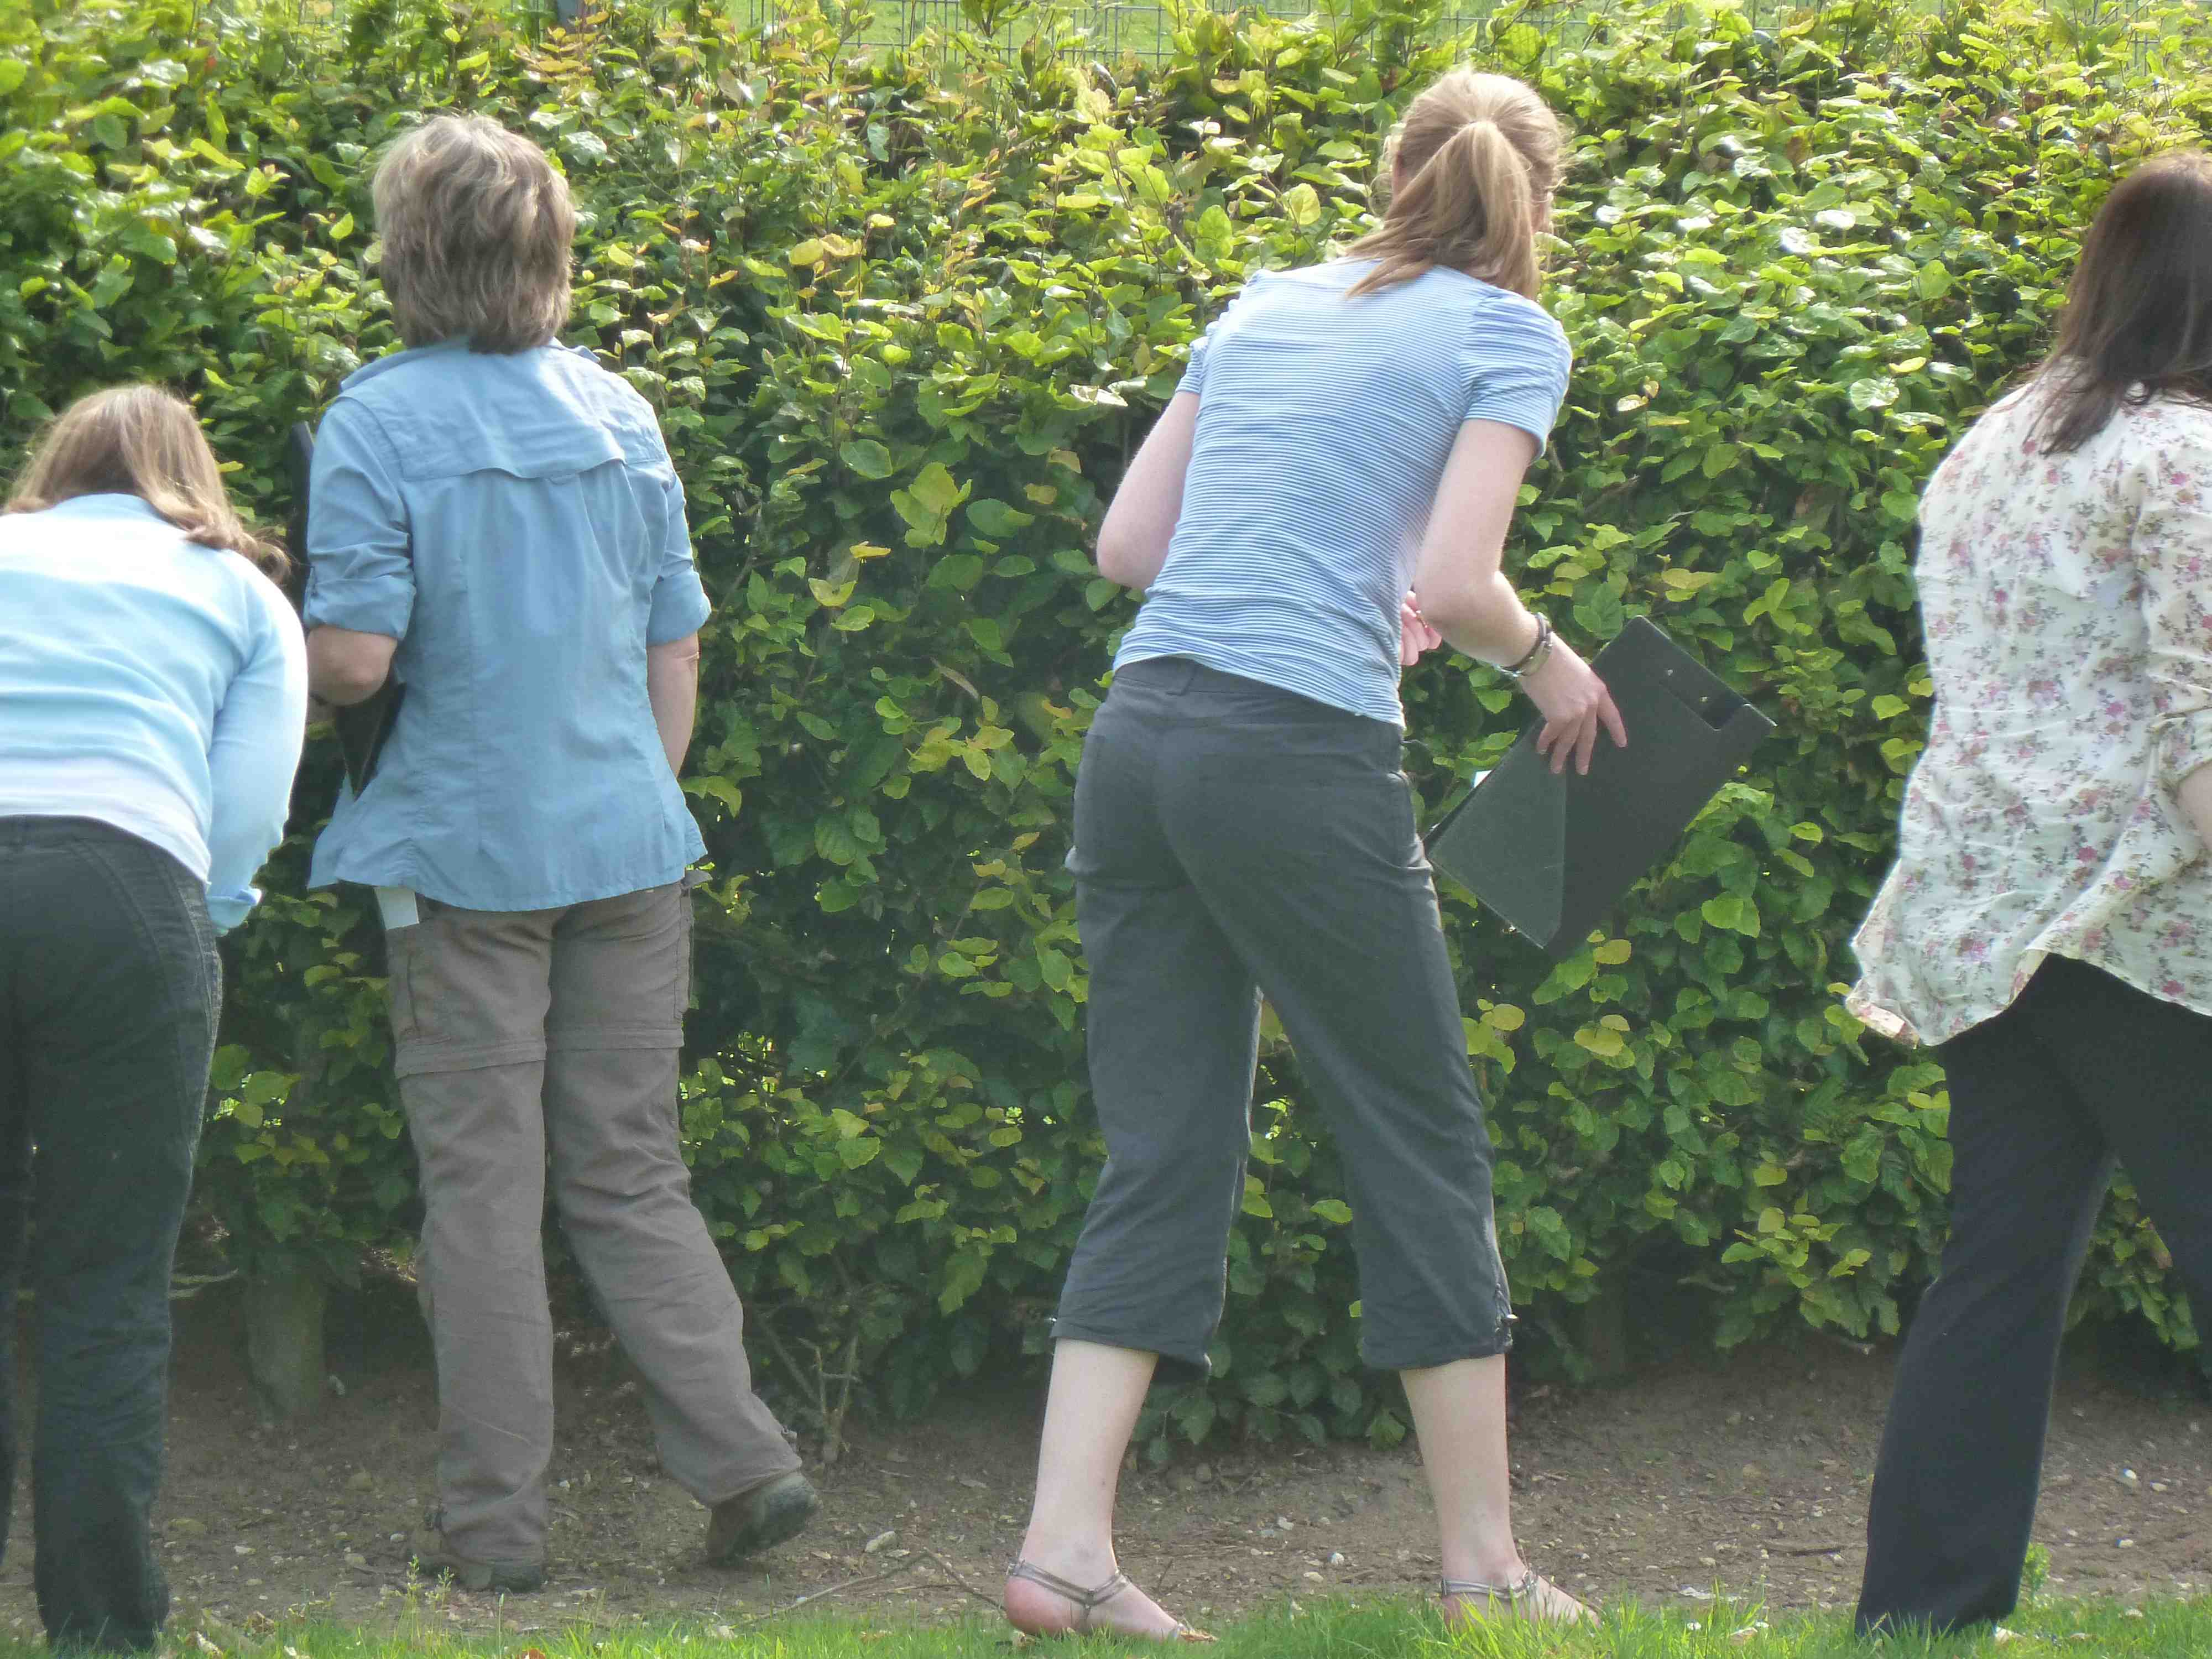 peering in the hedge to undertake the 'unnature trail' (literacy)